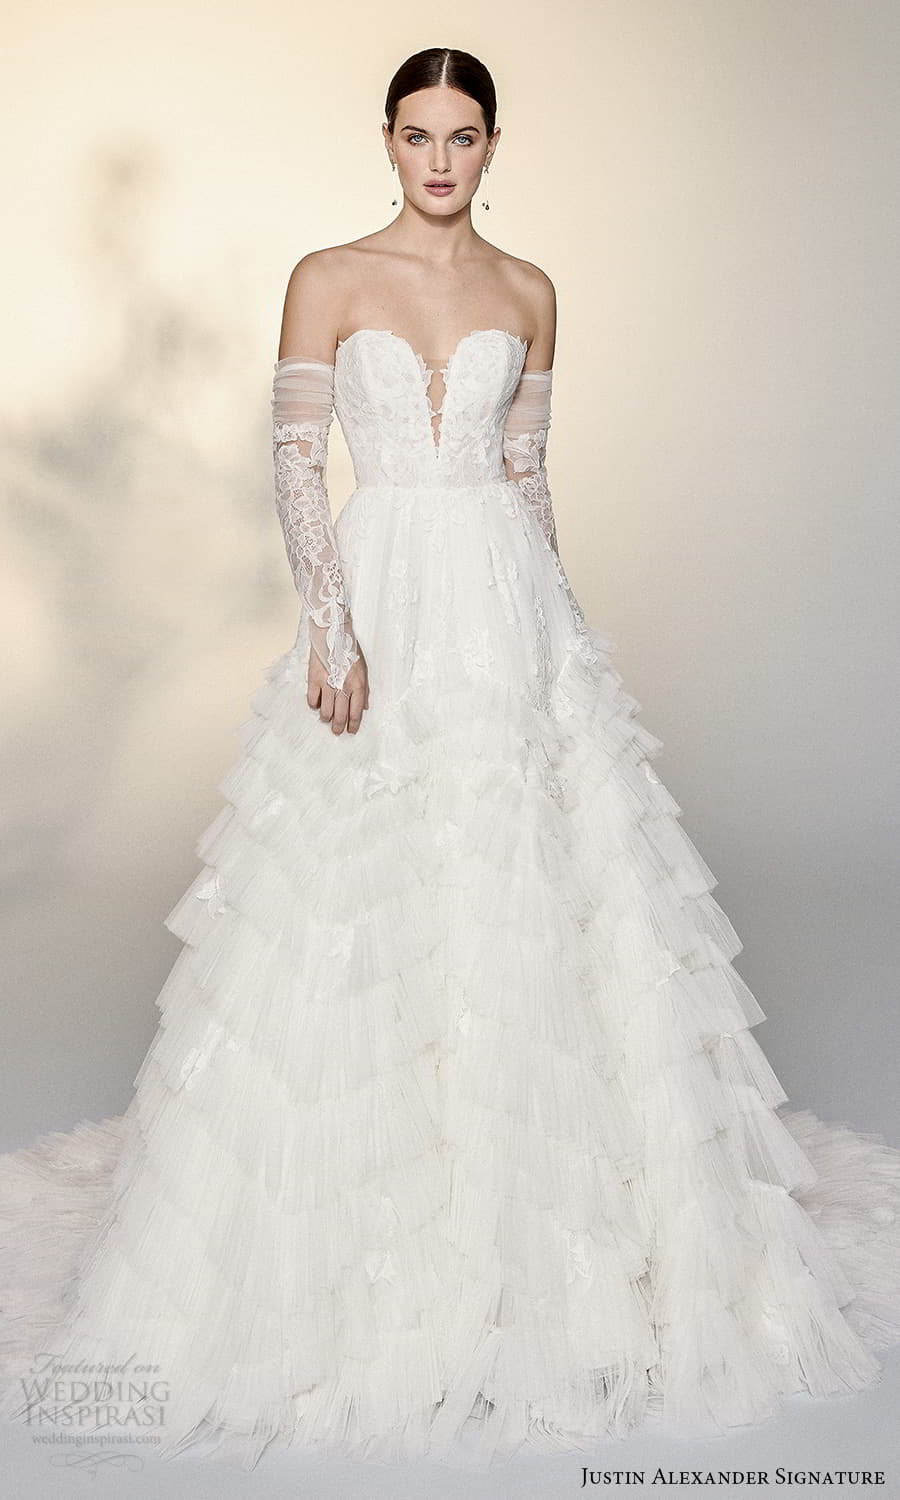 justin alexander signature spring 2022 bridal detached long sleeves strapless sweetheart neckline fully embellished lace a line ball gown wedding dress chapel train (9) mv